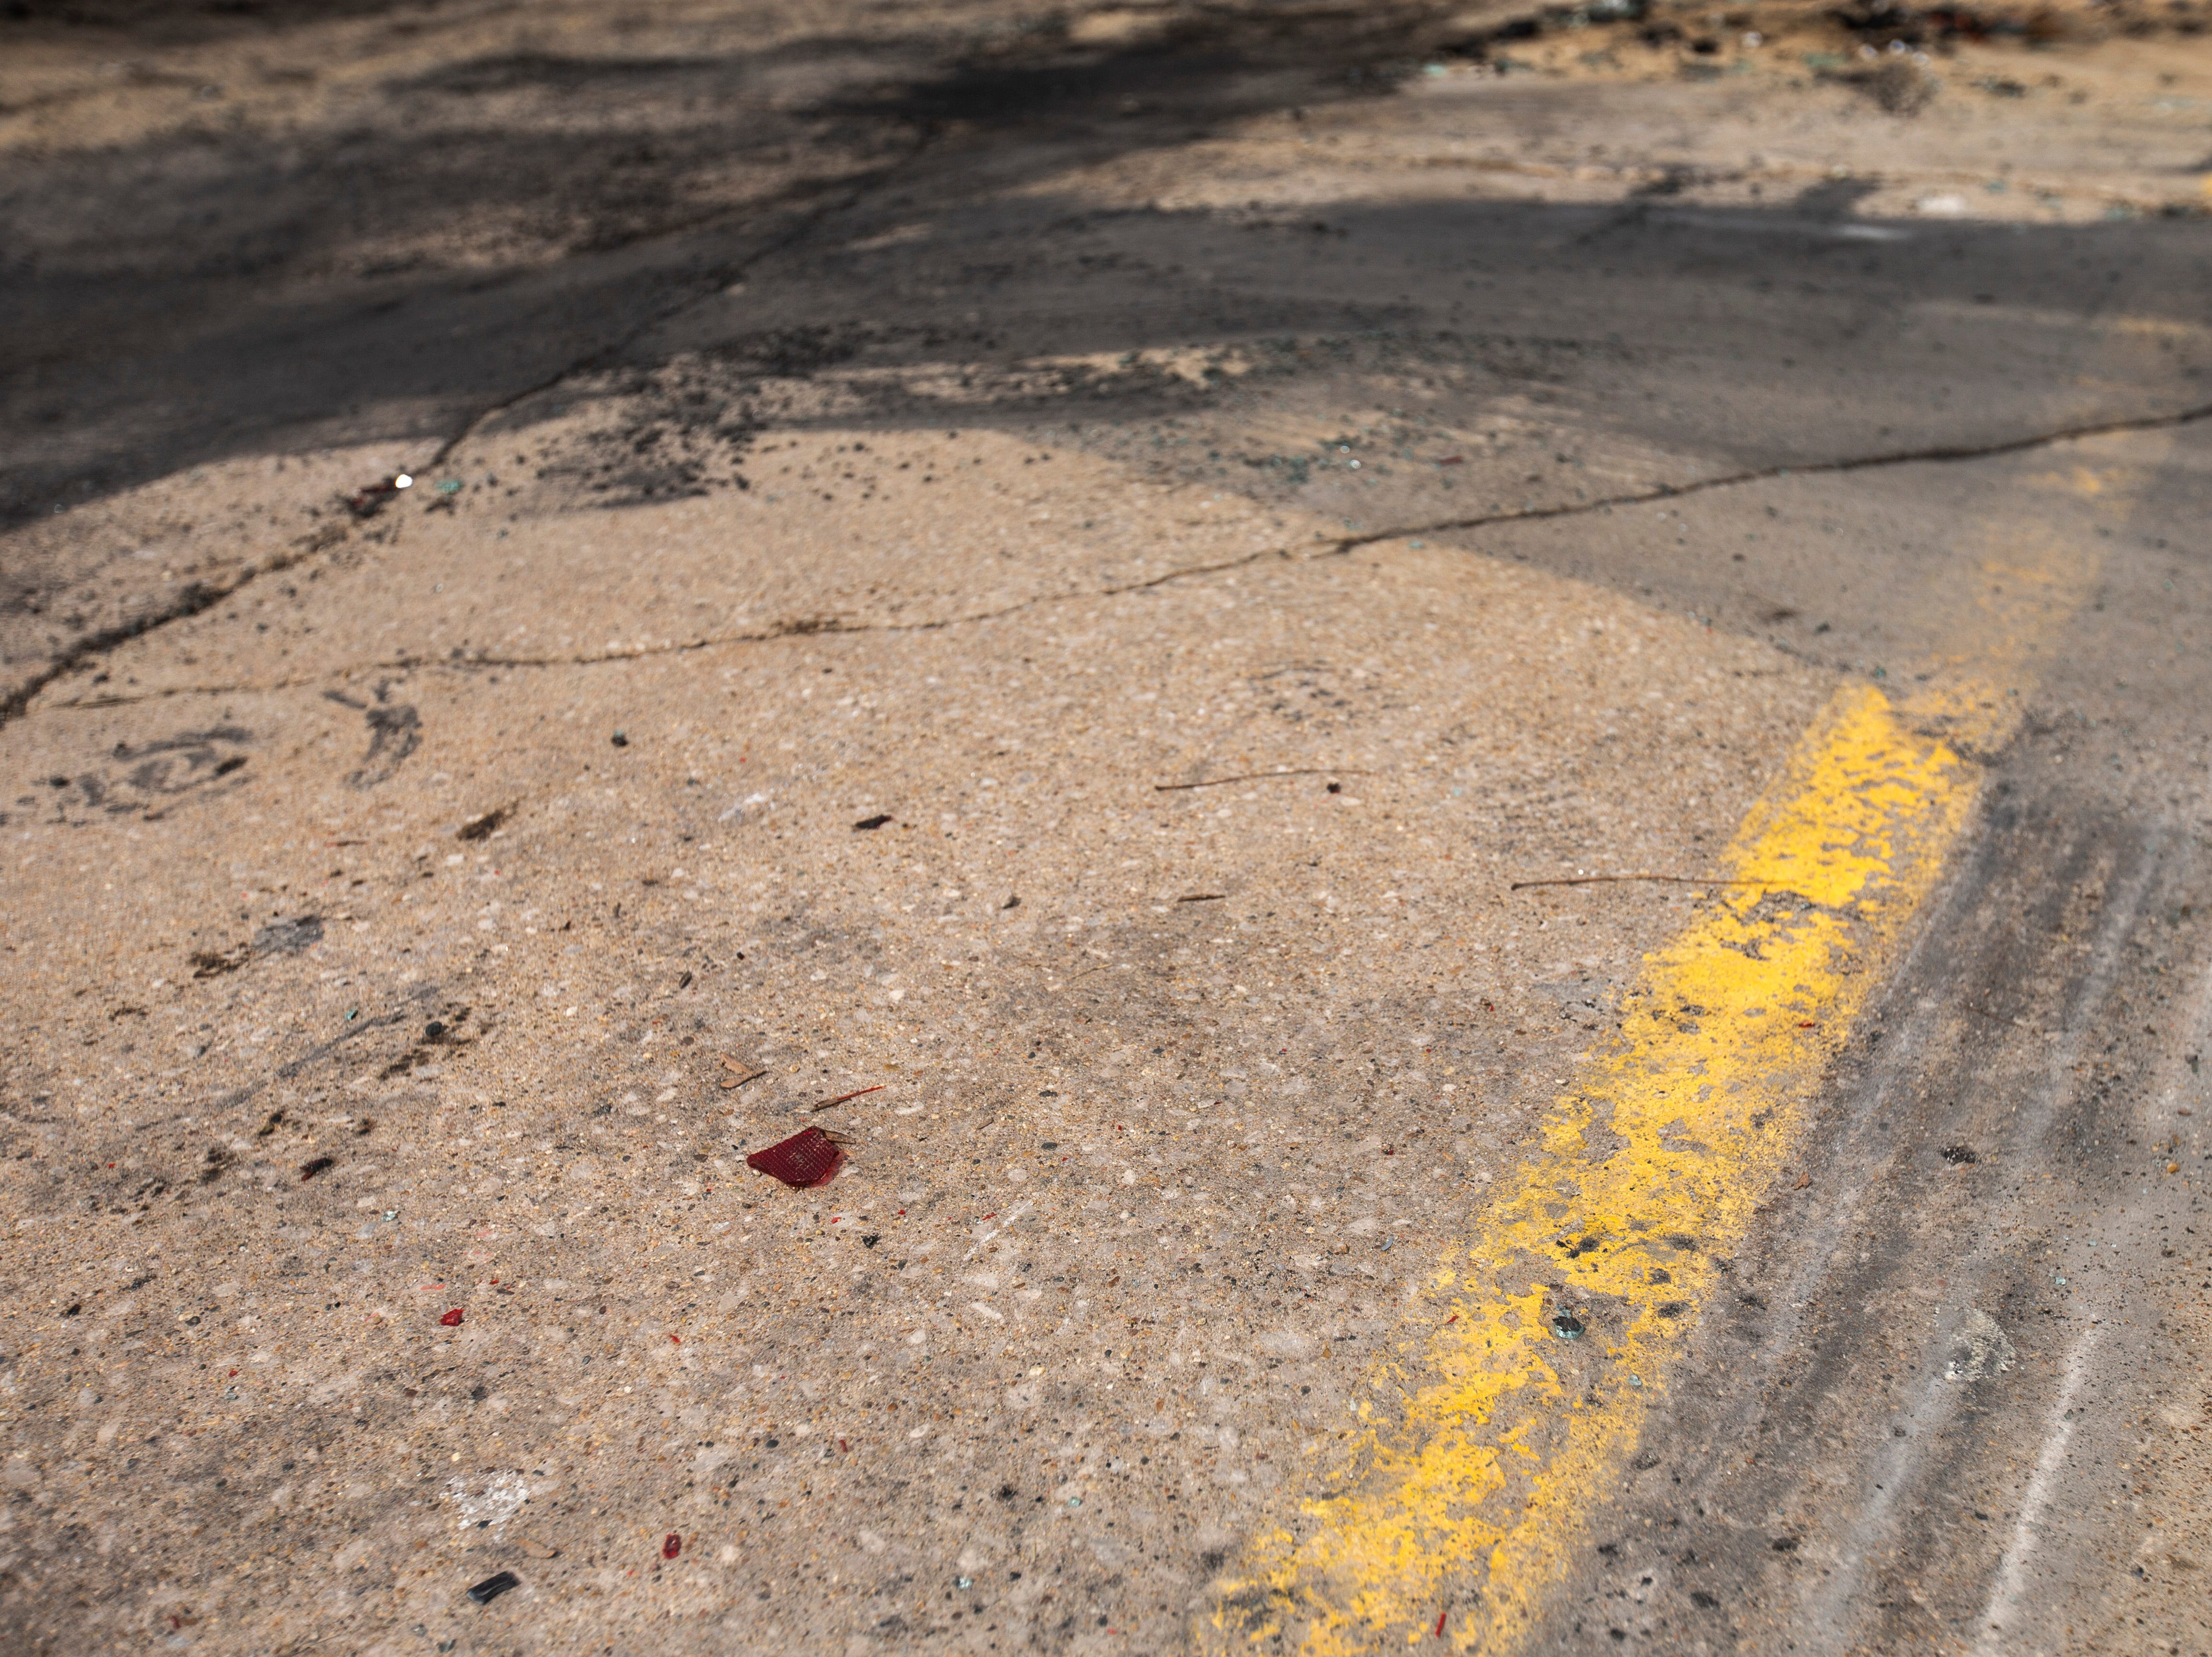 Tire marks lead away from the building where debris remains from a car fire, Tuesday, March 19, 2019, at 1213 Gilbert Court, in the parking lot of the former Crowded Closet store in Iowa City, Iowa. One person died in the car fire Monday night.